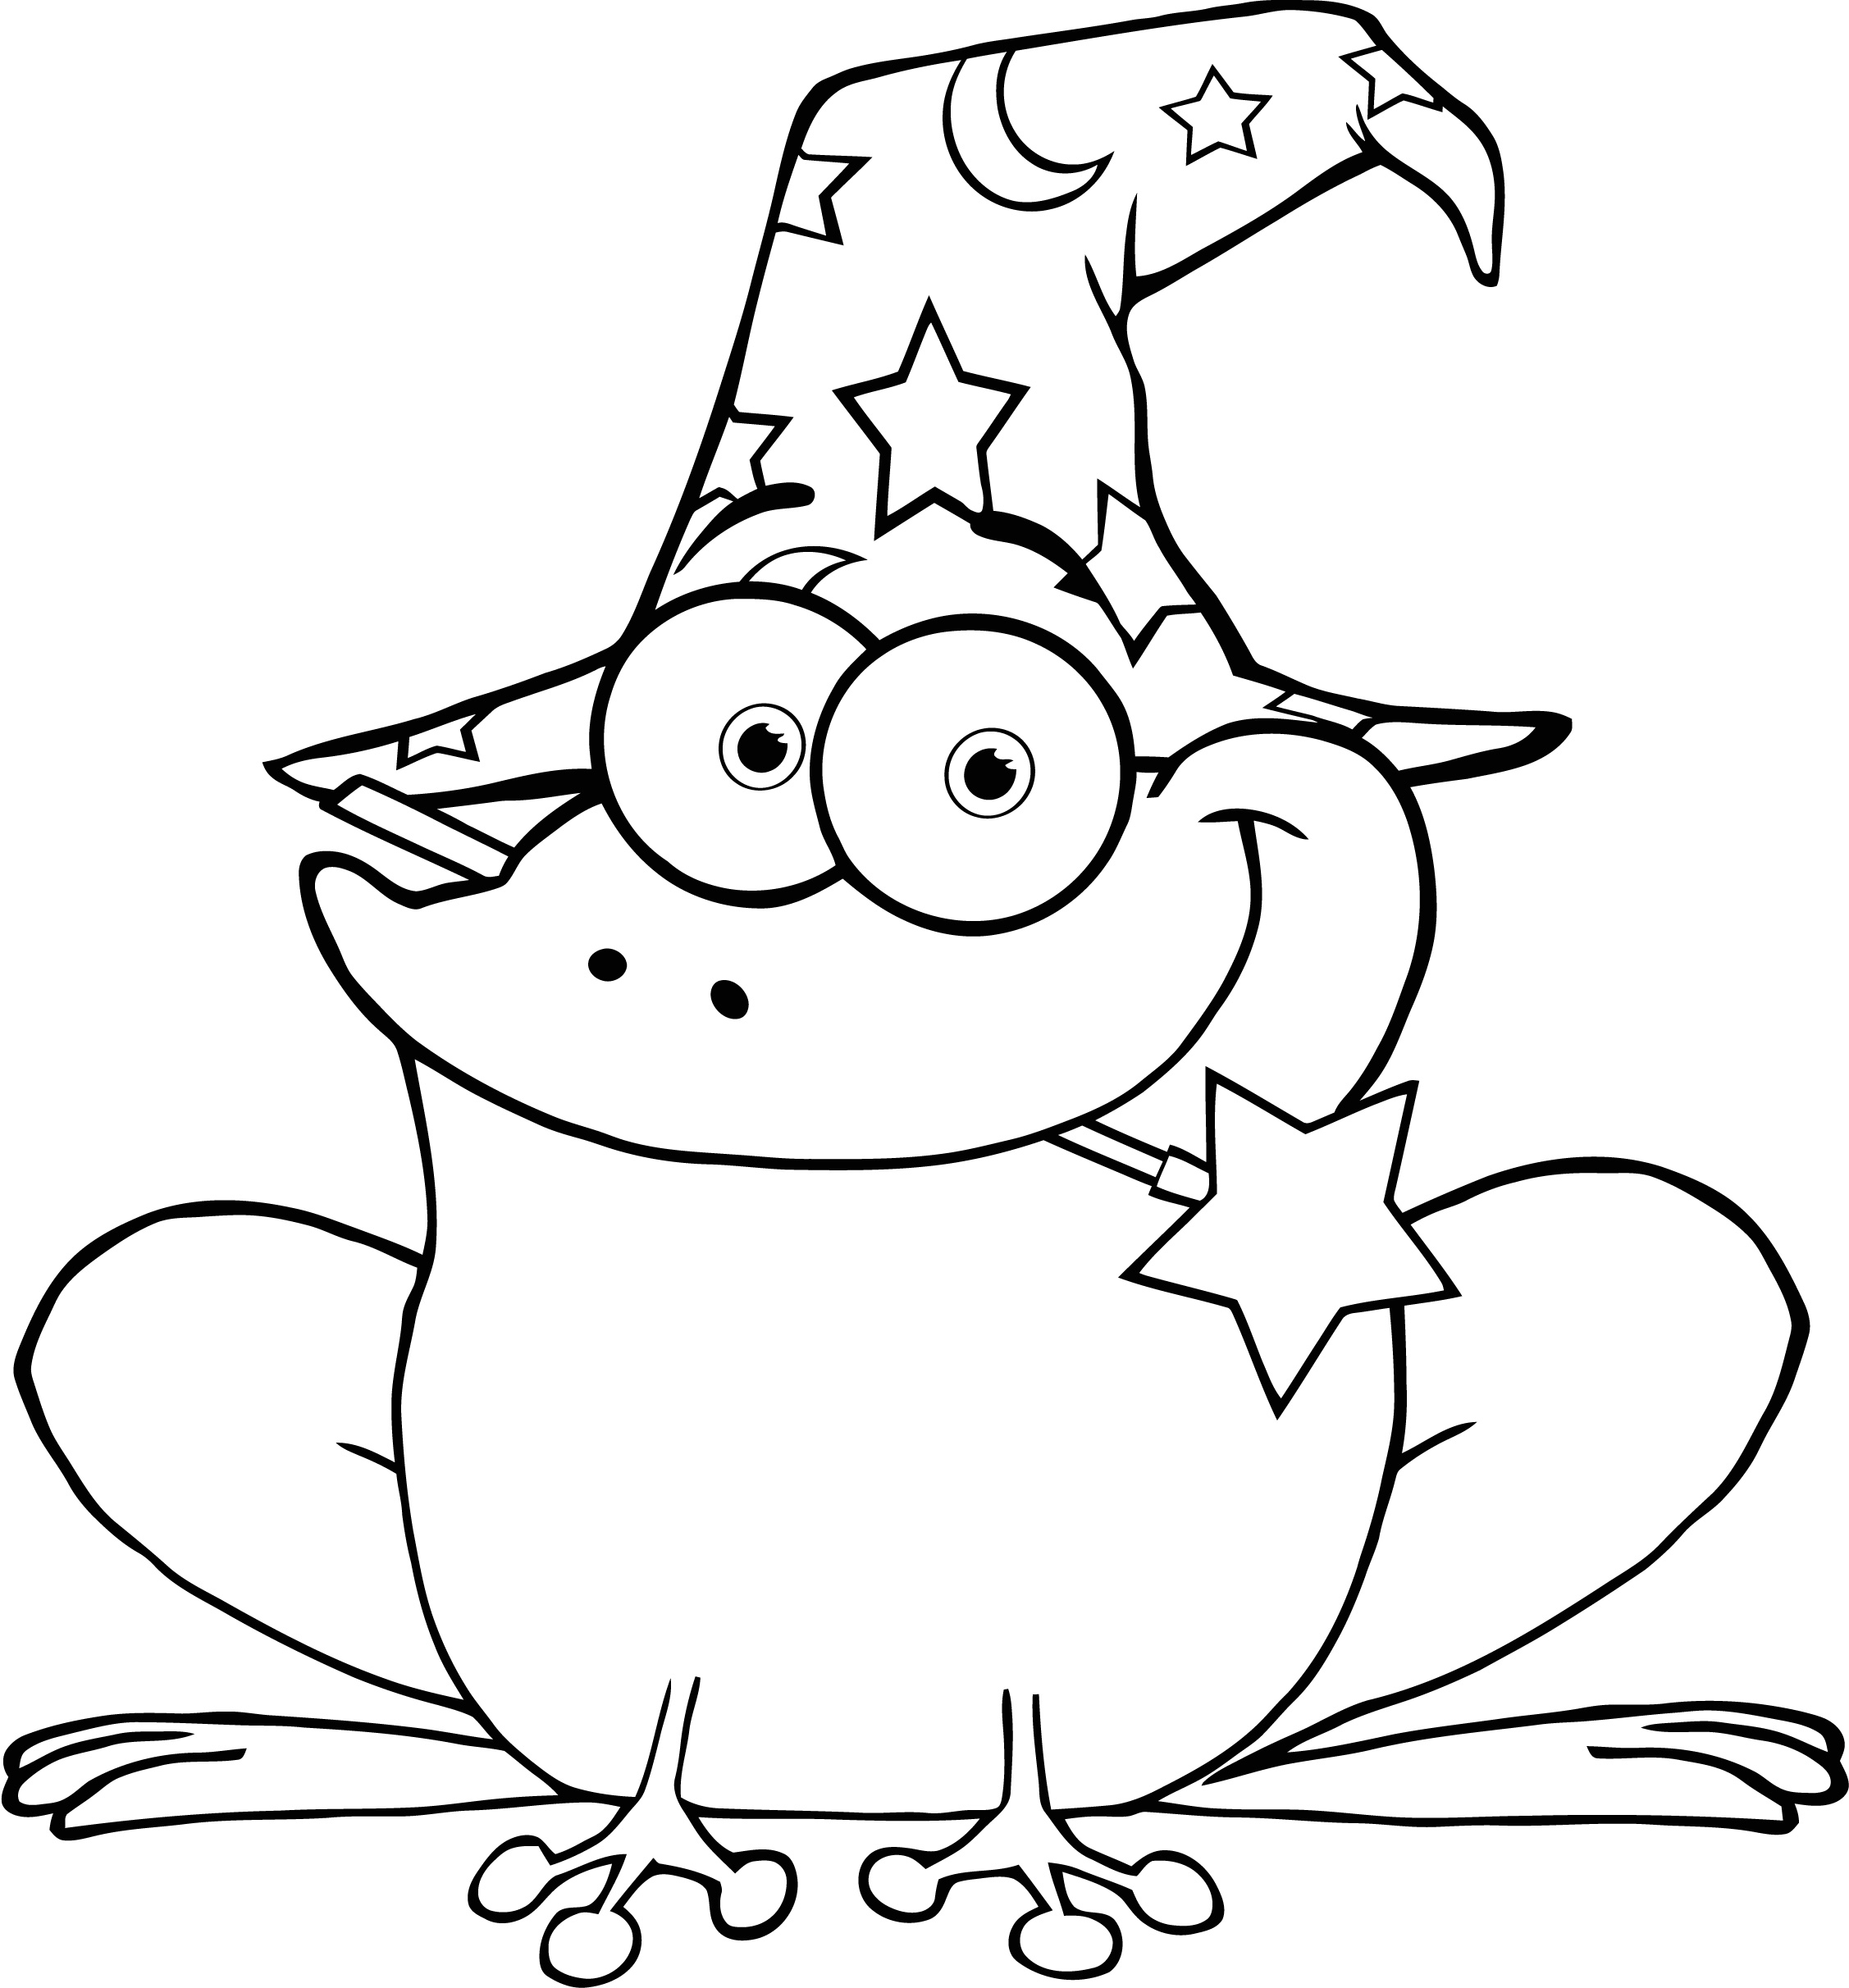 Coloring Pages Dragons Wizards Sizzors Colour Page Of Wizard Frog With A Magic